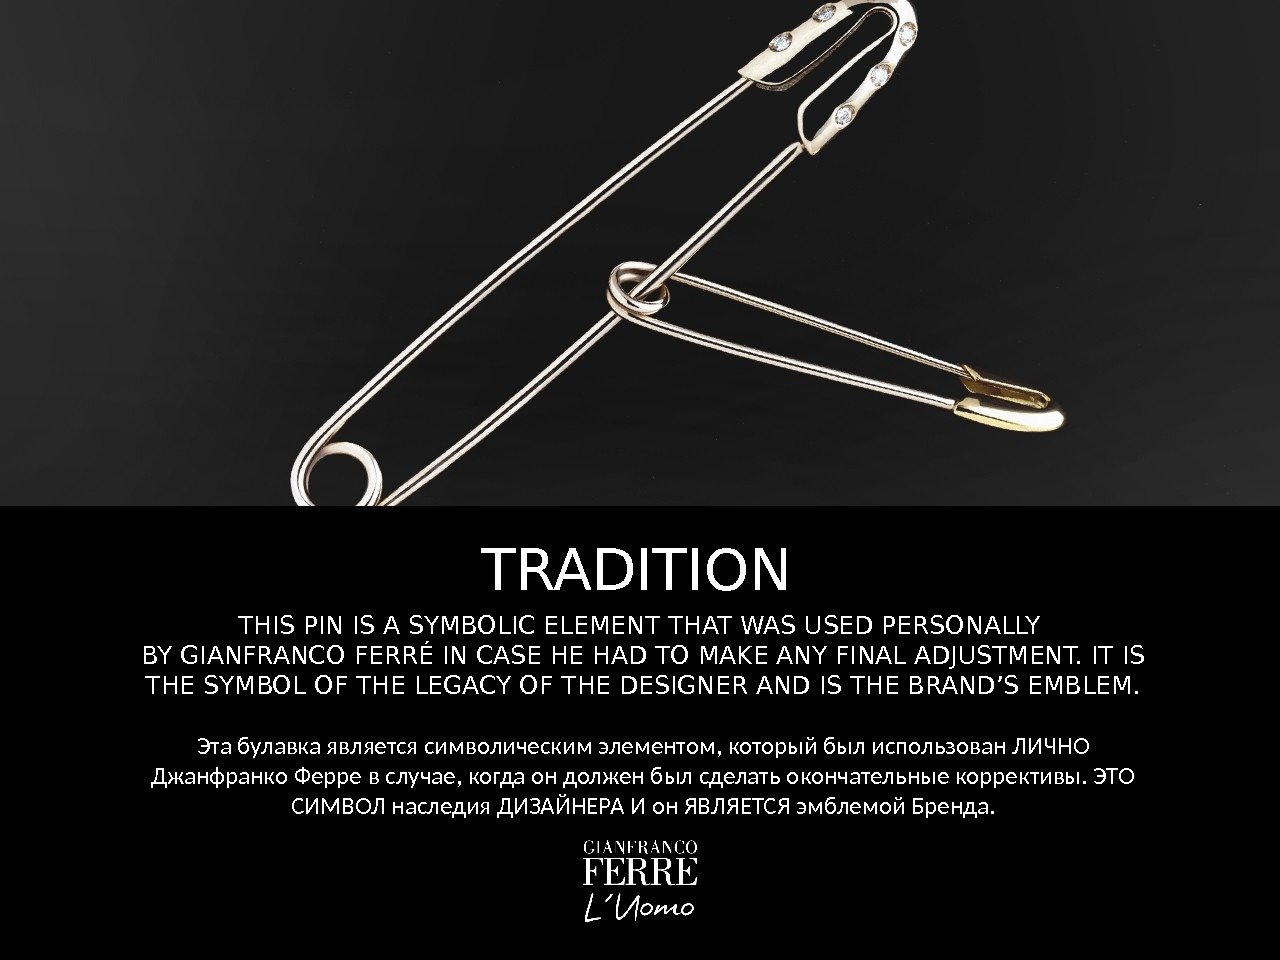 THIS PIN IS A SYMBOLIC ELEMENT THAT WAS USED PERSONALLY BY GIANFRANCO FERRÉ IN